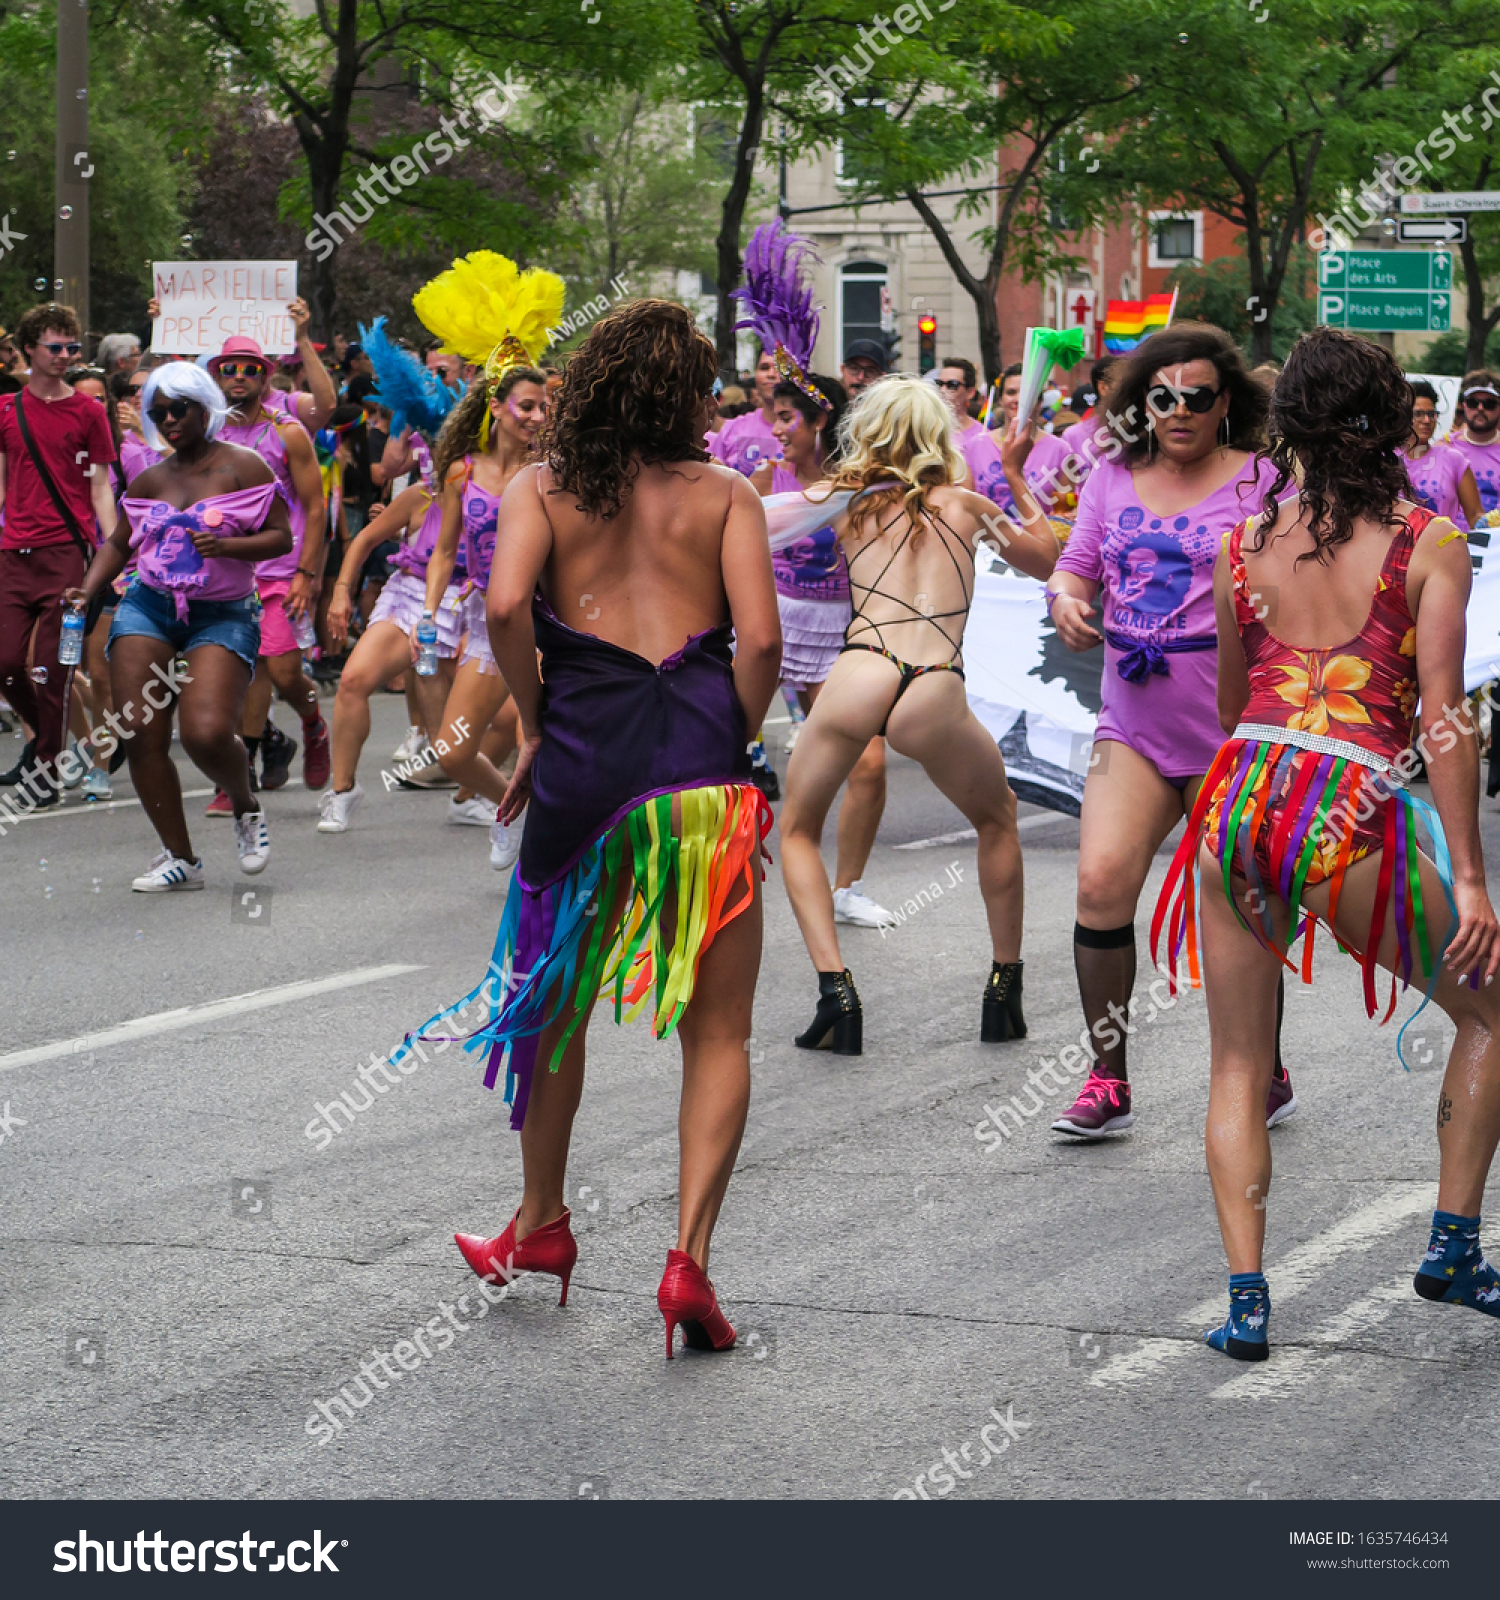 stock-photo-montreal-canada-august-gay-p